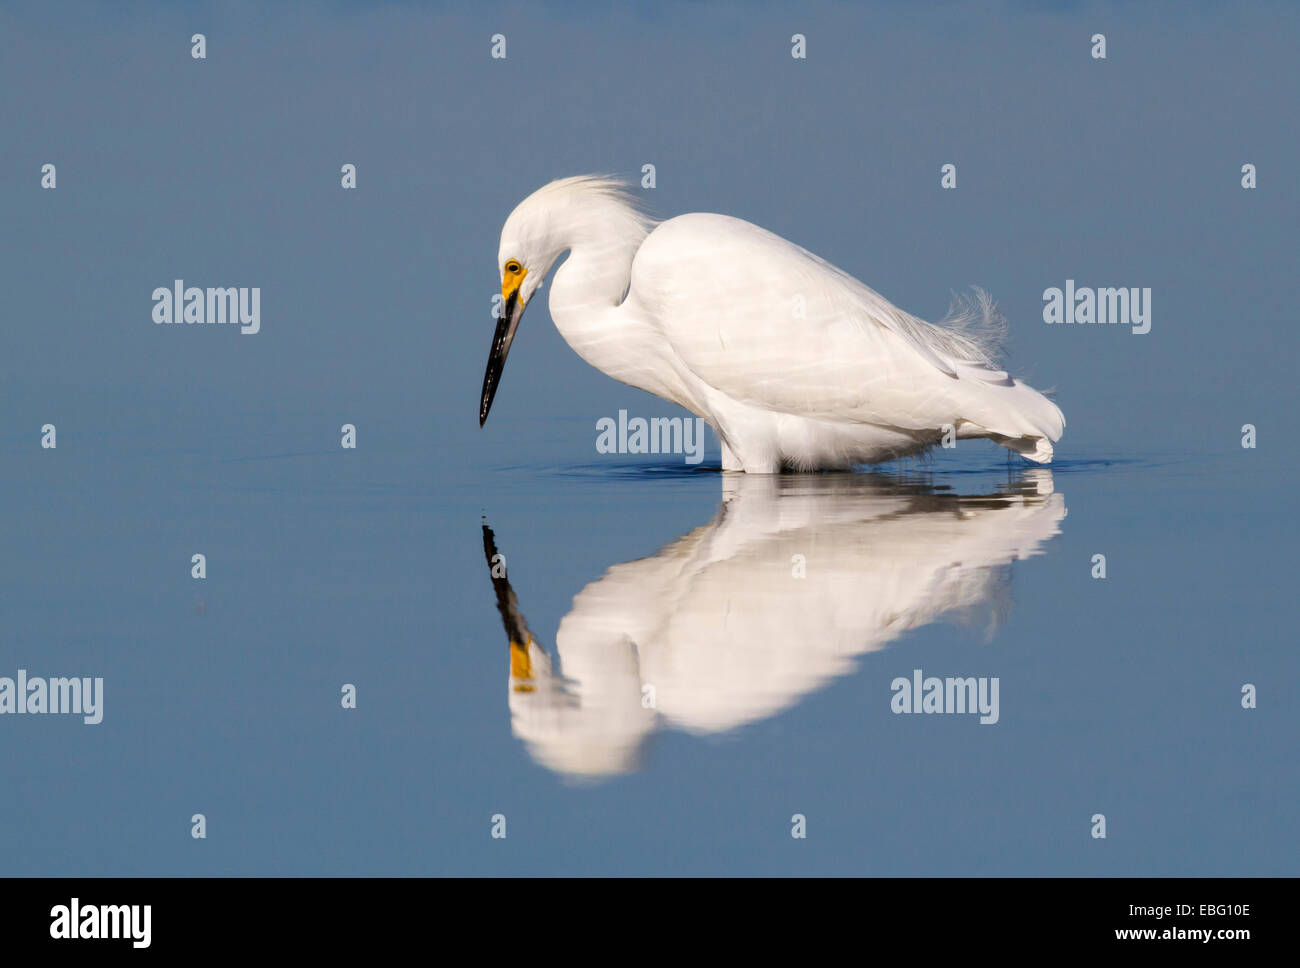 Snowy egret (Egretta thula) foraging in a quiet lake at early windless morning, Galveston, Texas, USA. - Stock Image